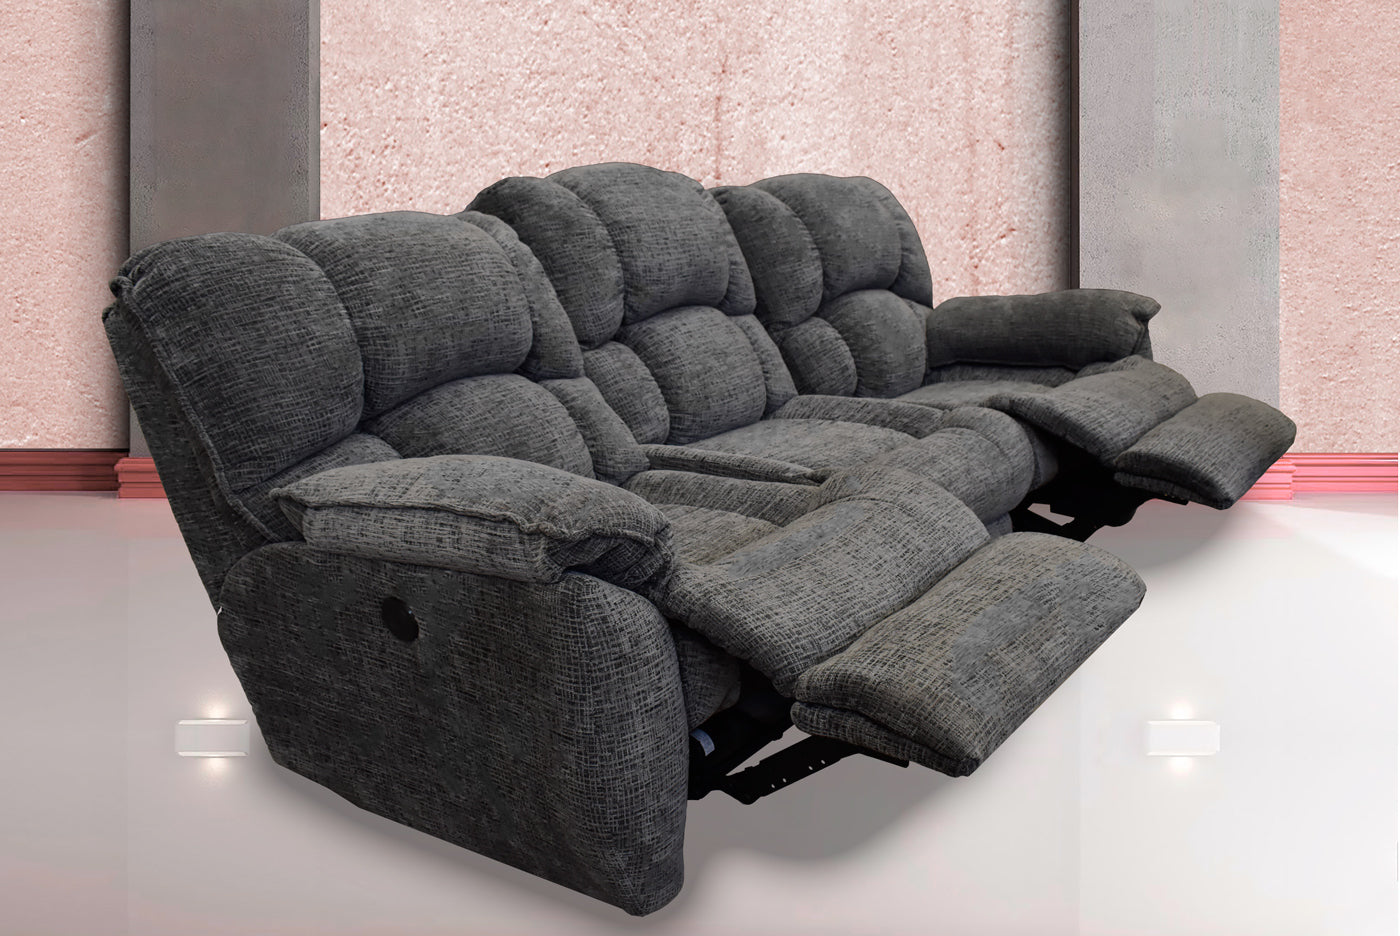 SOFA 739 RECLINABLE ELECTRICO BOARDWALK GREY